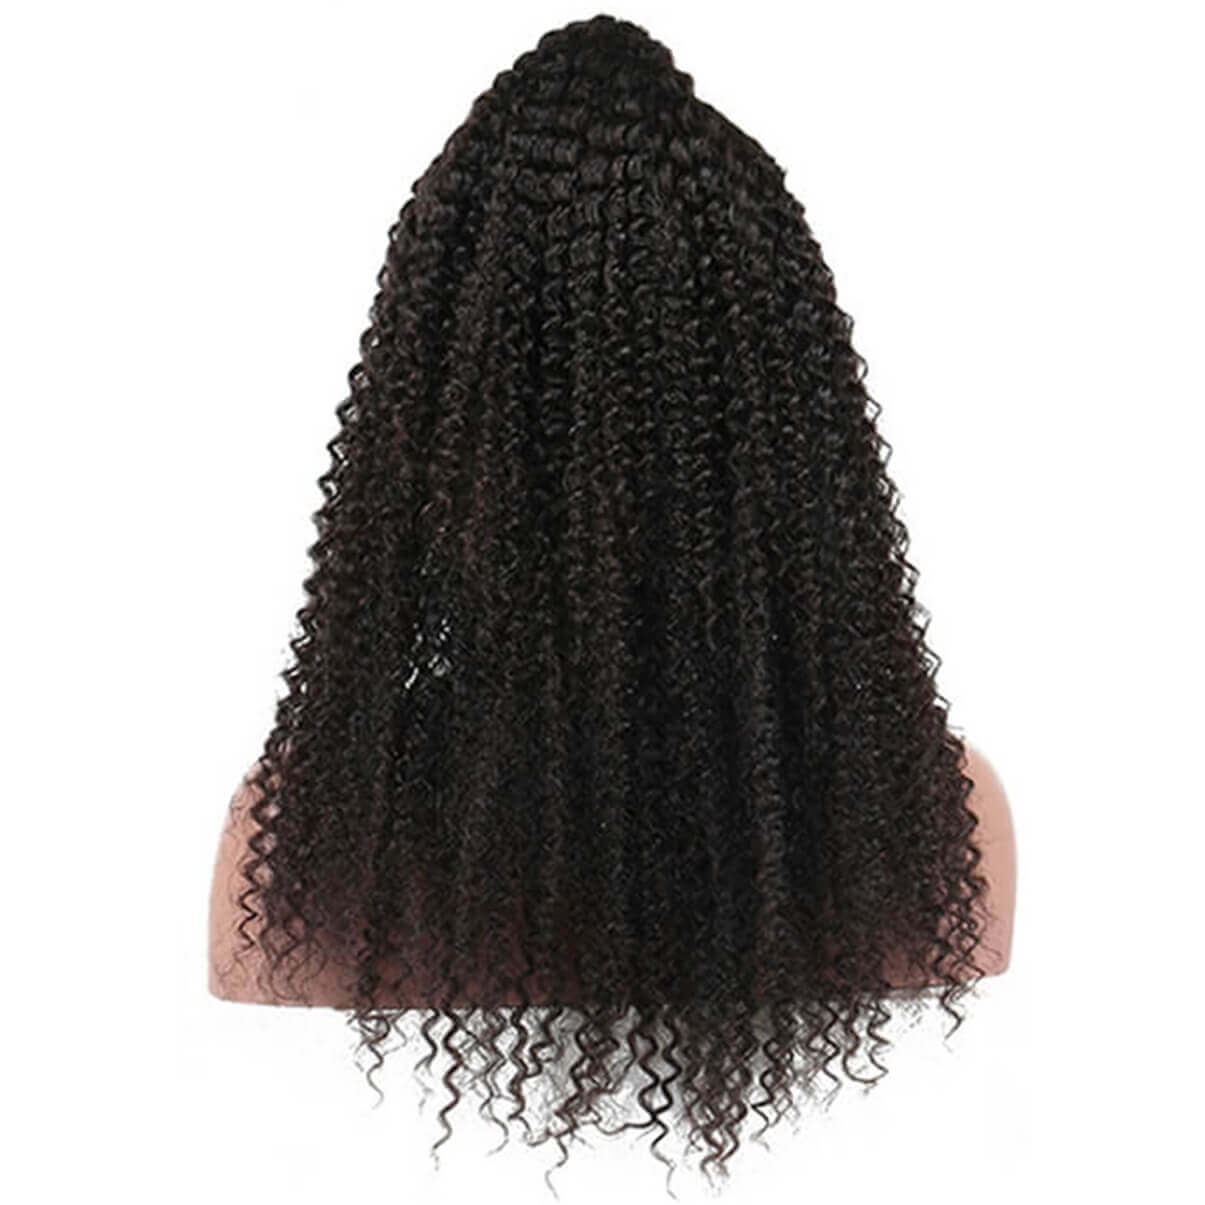 Lakihair Kinky Curly Full Lace Virgin Human Hair Wigs Pre Plucked With Baby Hair